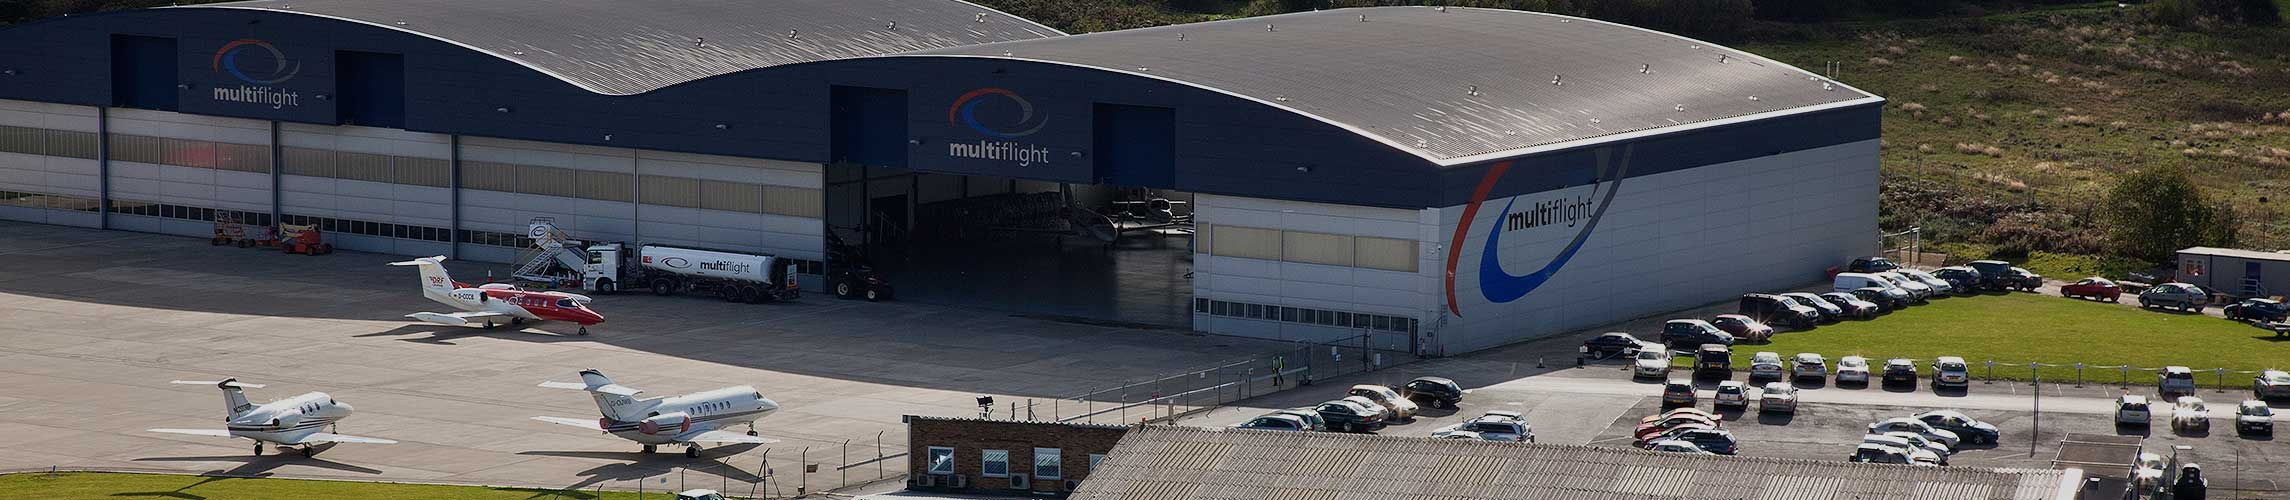 Multiflight Aircraft Hanger